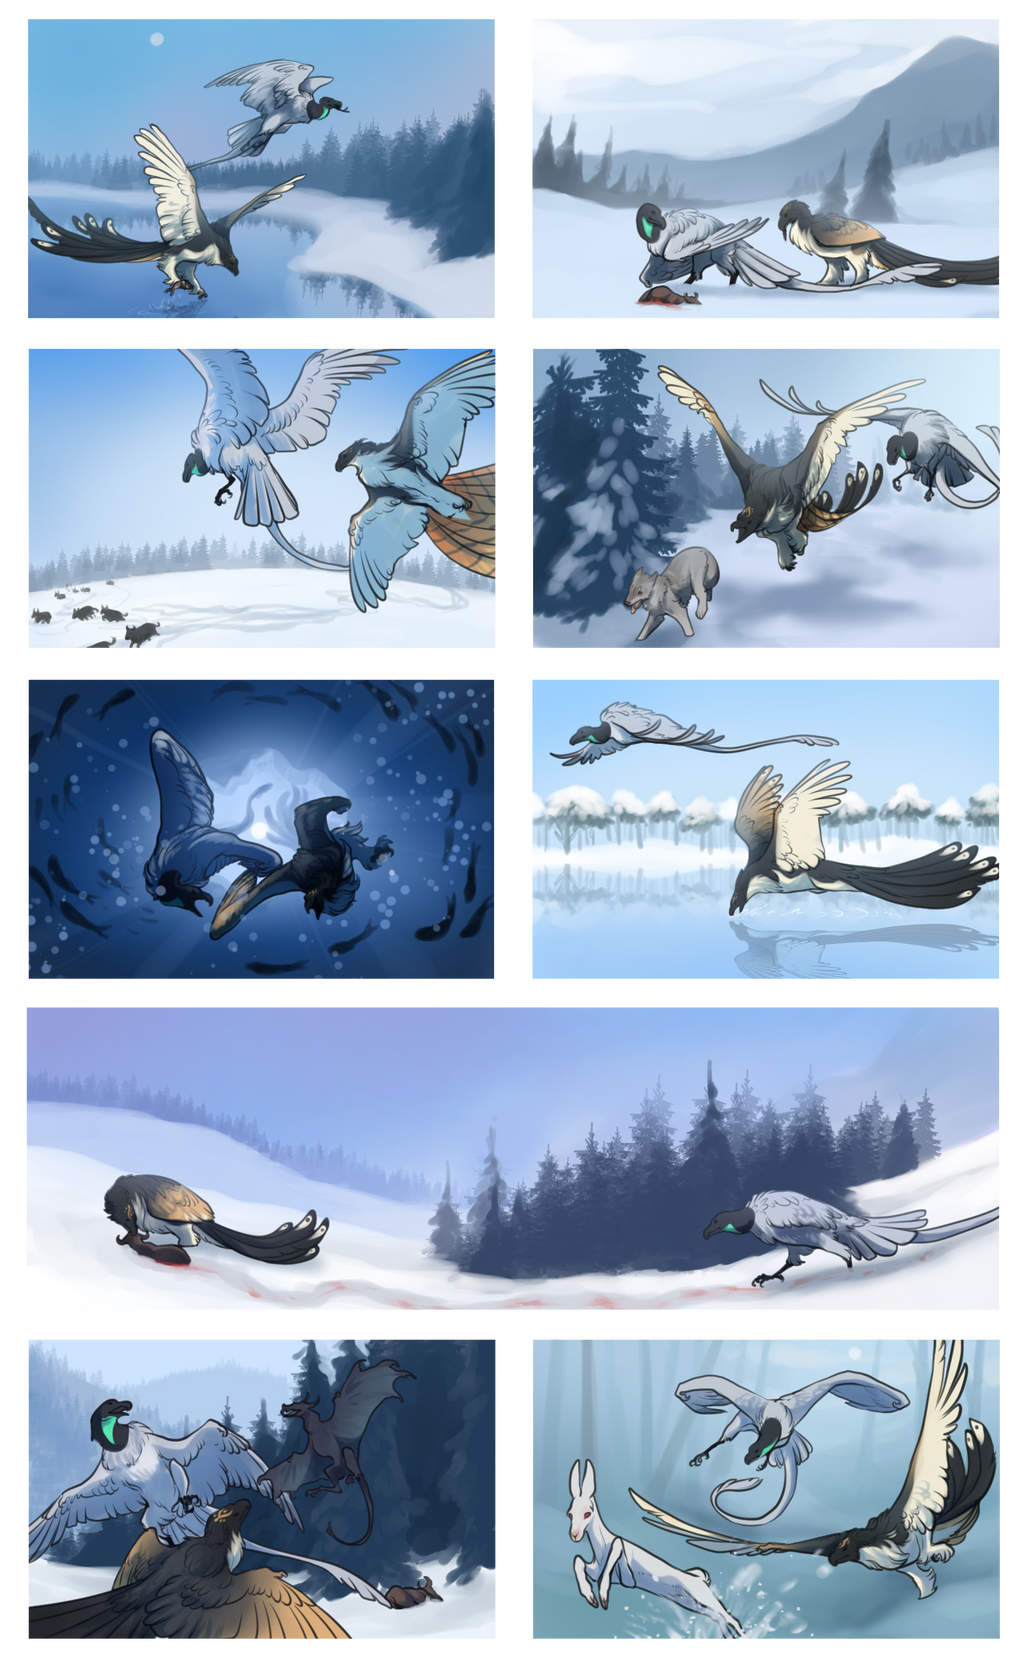 Winter Hunting Trip by PimsriARPG